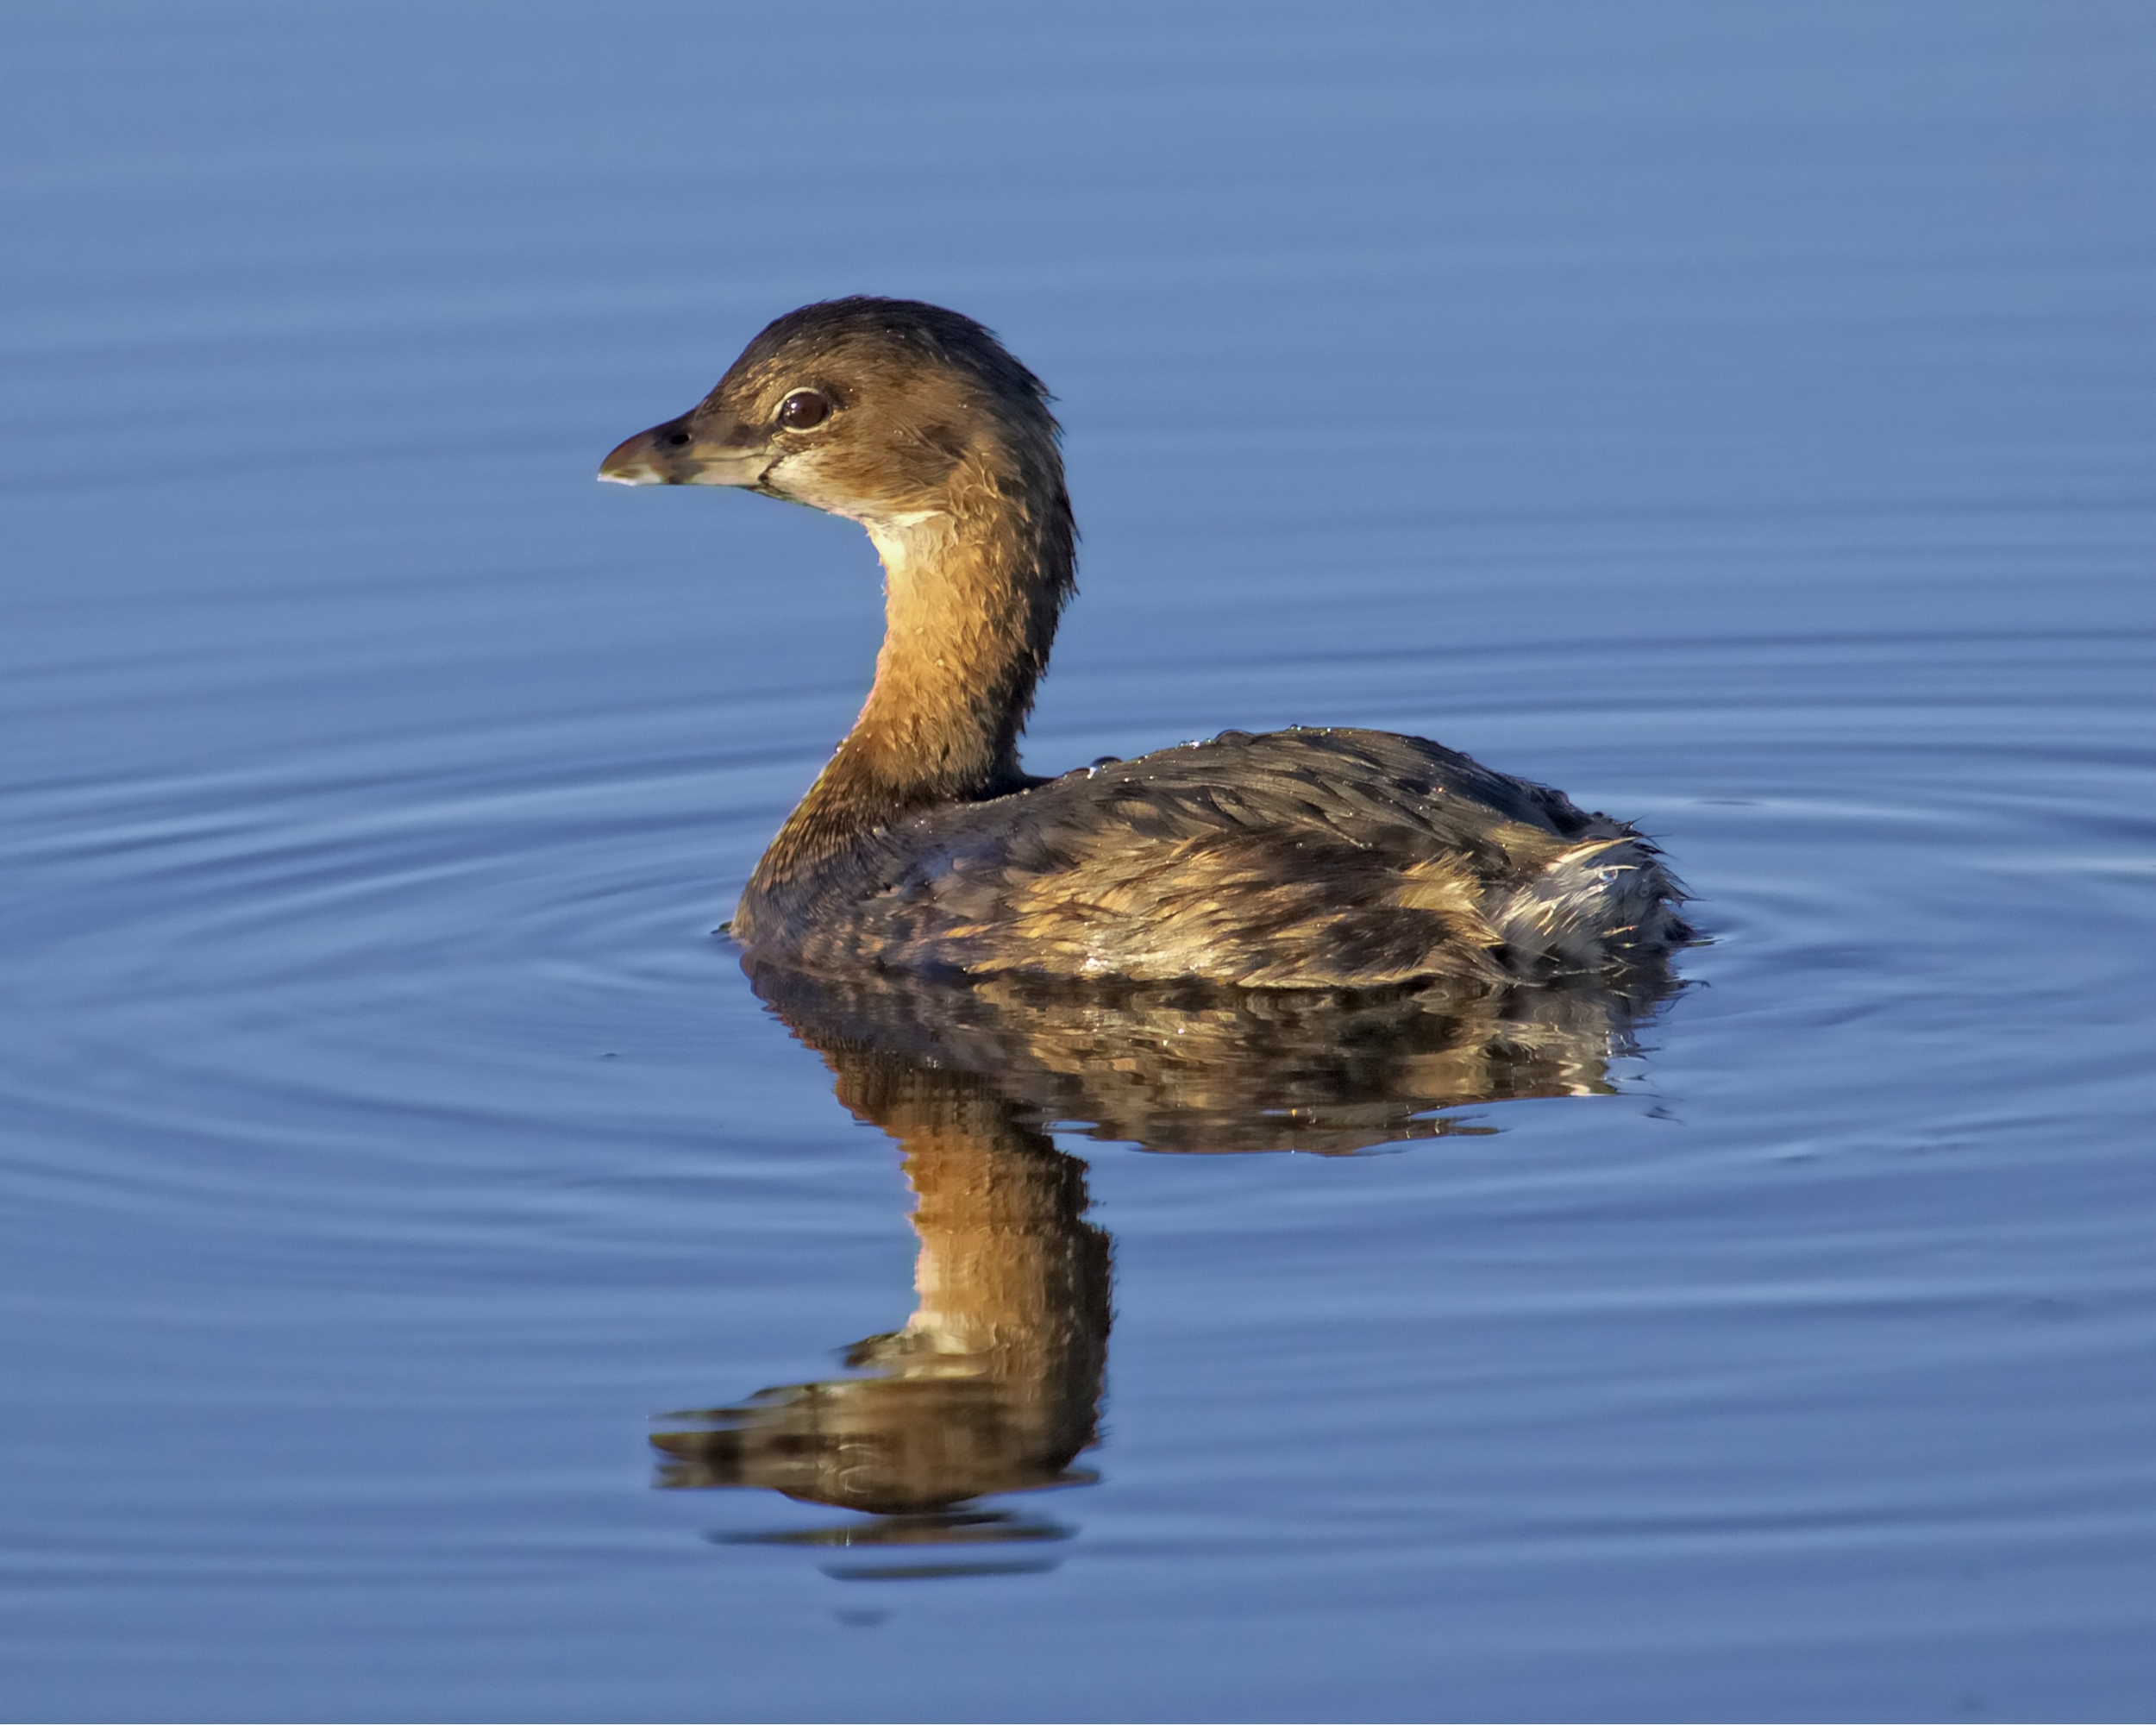 Sky Blues seem deep and rich right after dawn as this little Pied-billed Grebe gets ready to feed..